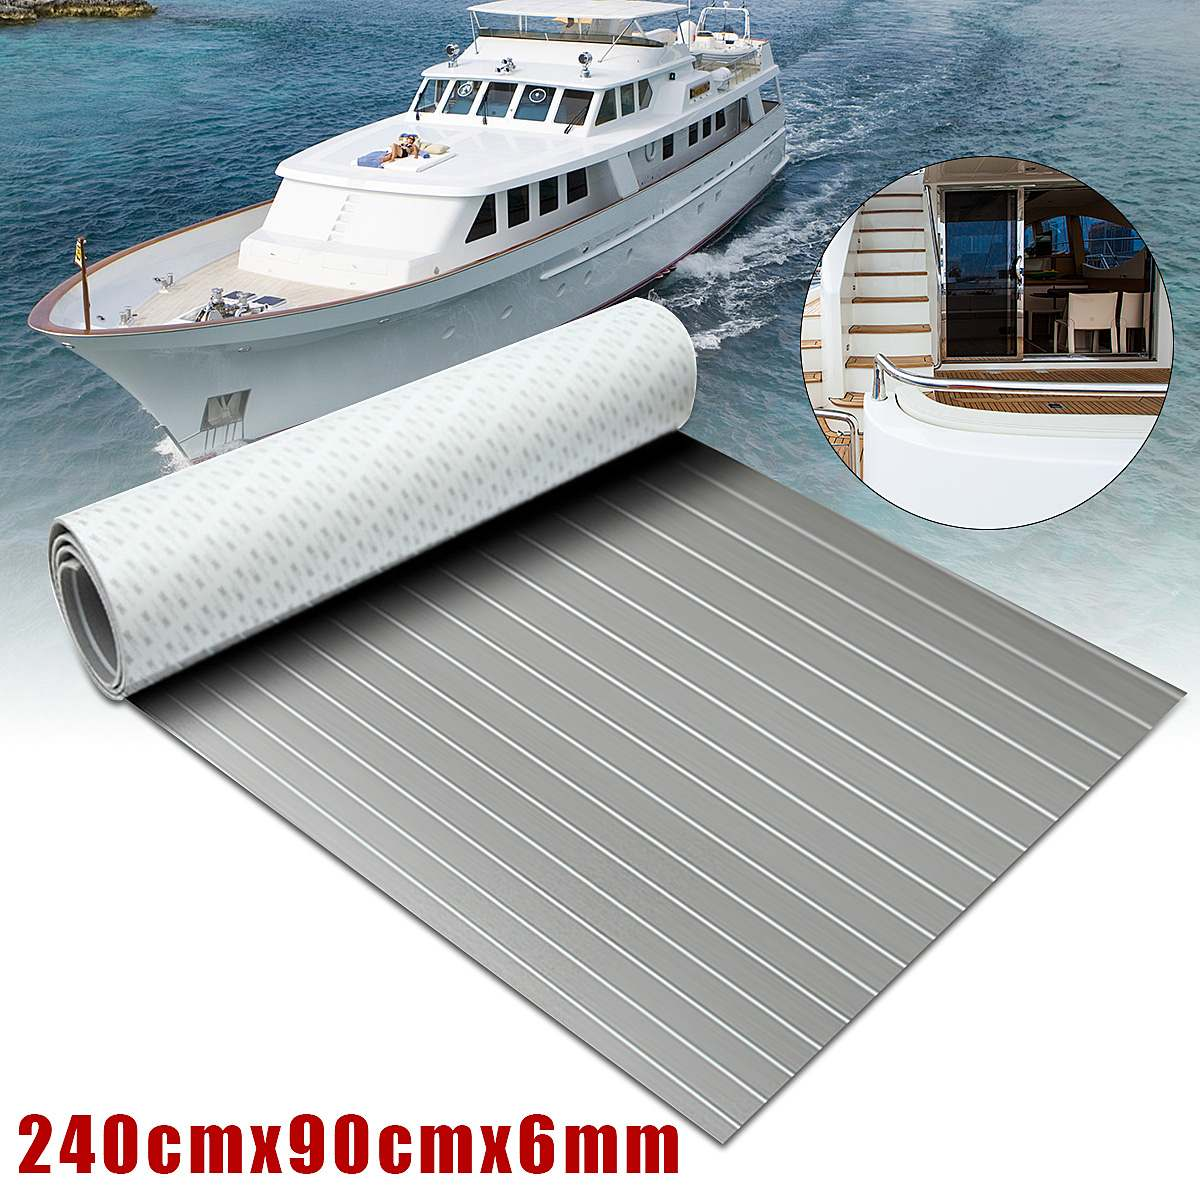 2400x900x6mm Self-Adhesive EVA Foam Sheet Grey With White Line Marine Flooring Faux Teak Boat Decking Pad